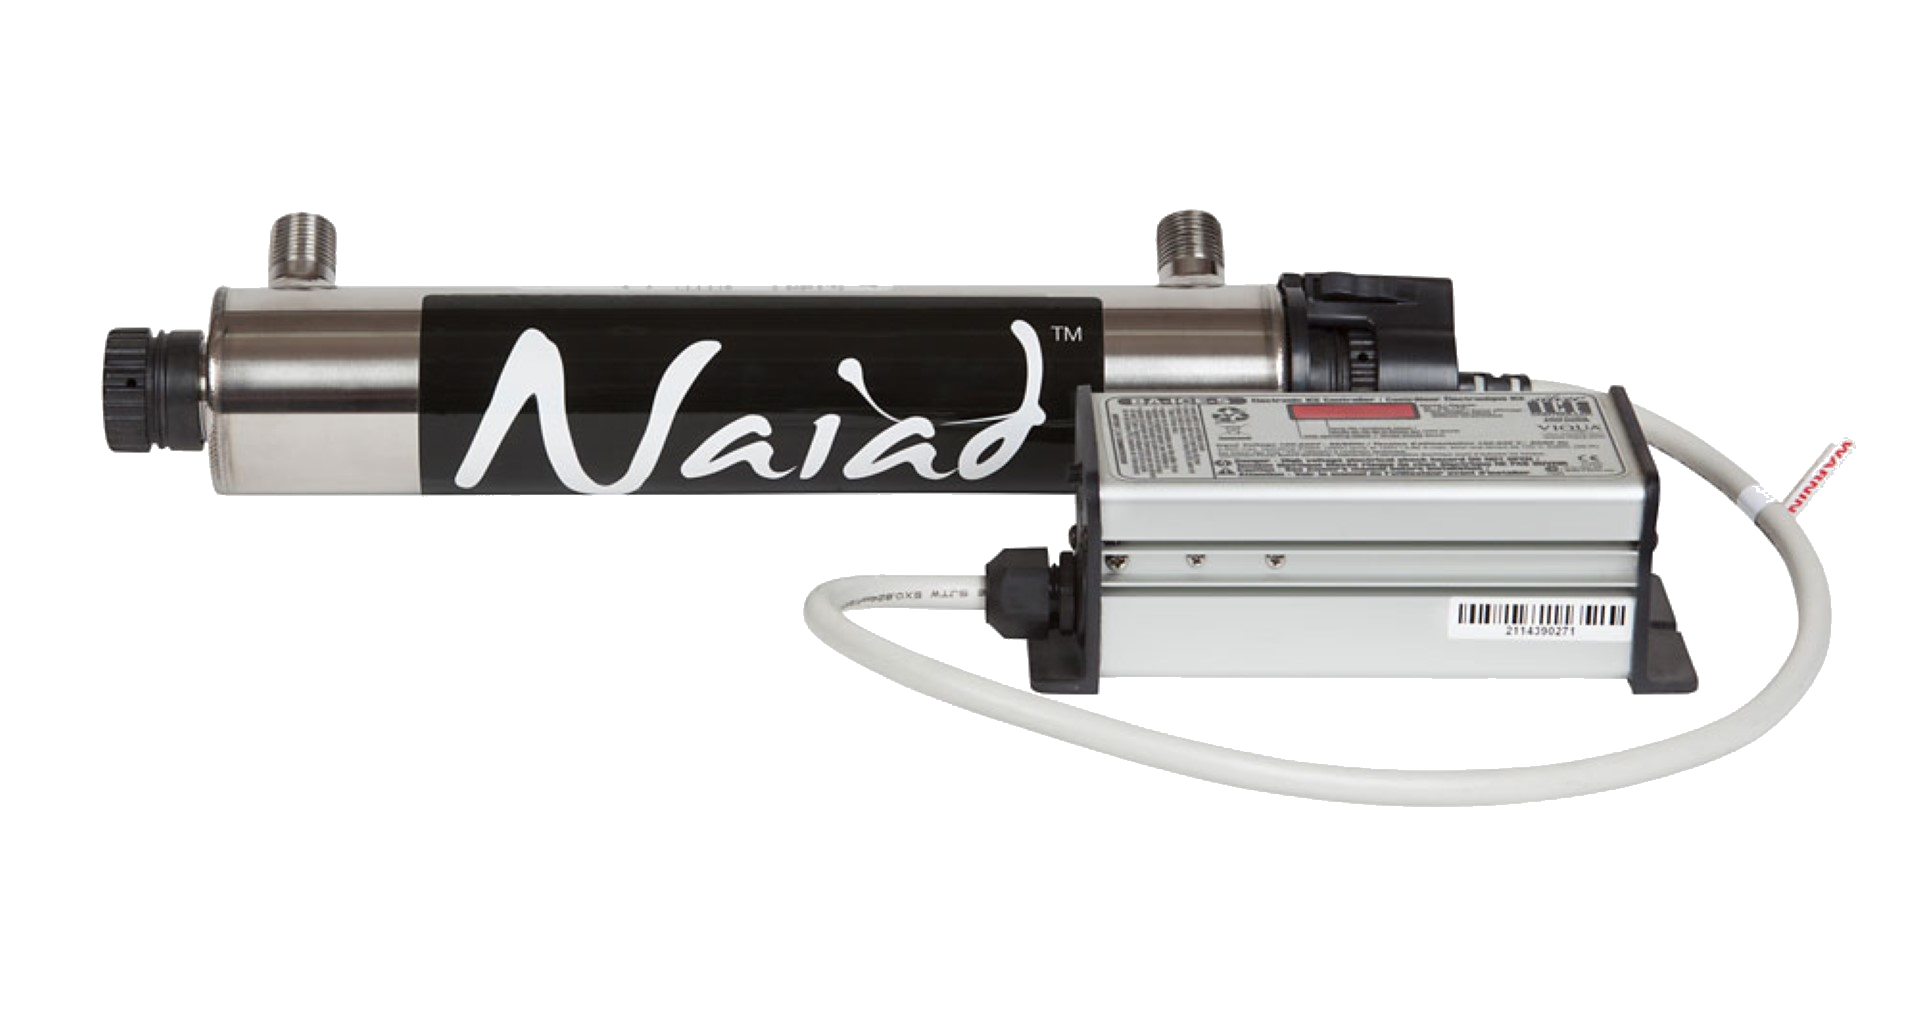 Naiad Water UV Light San Diego